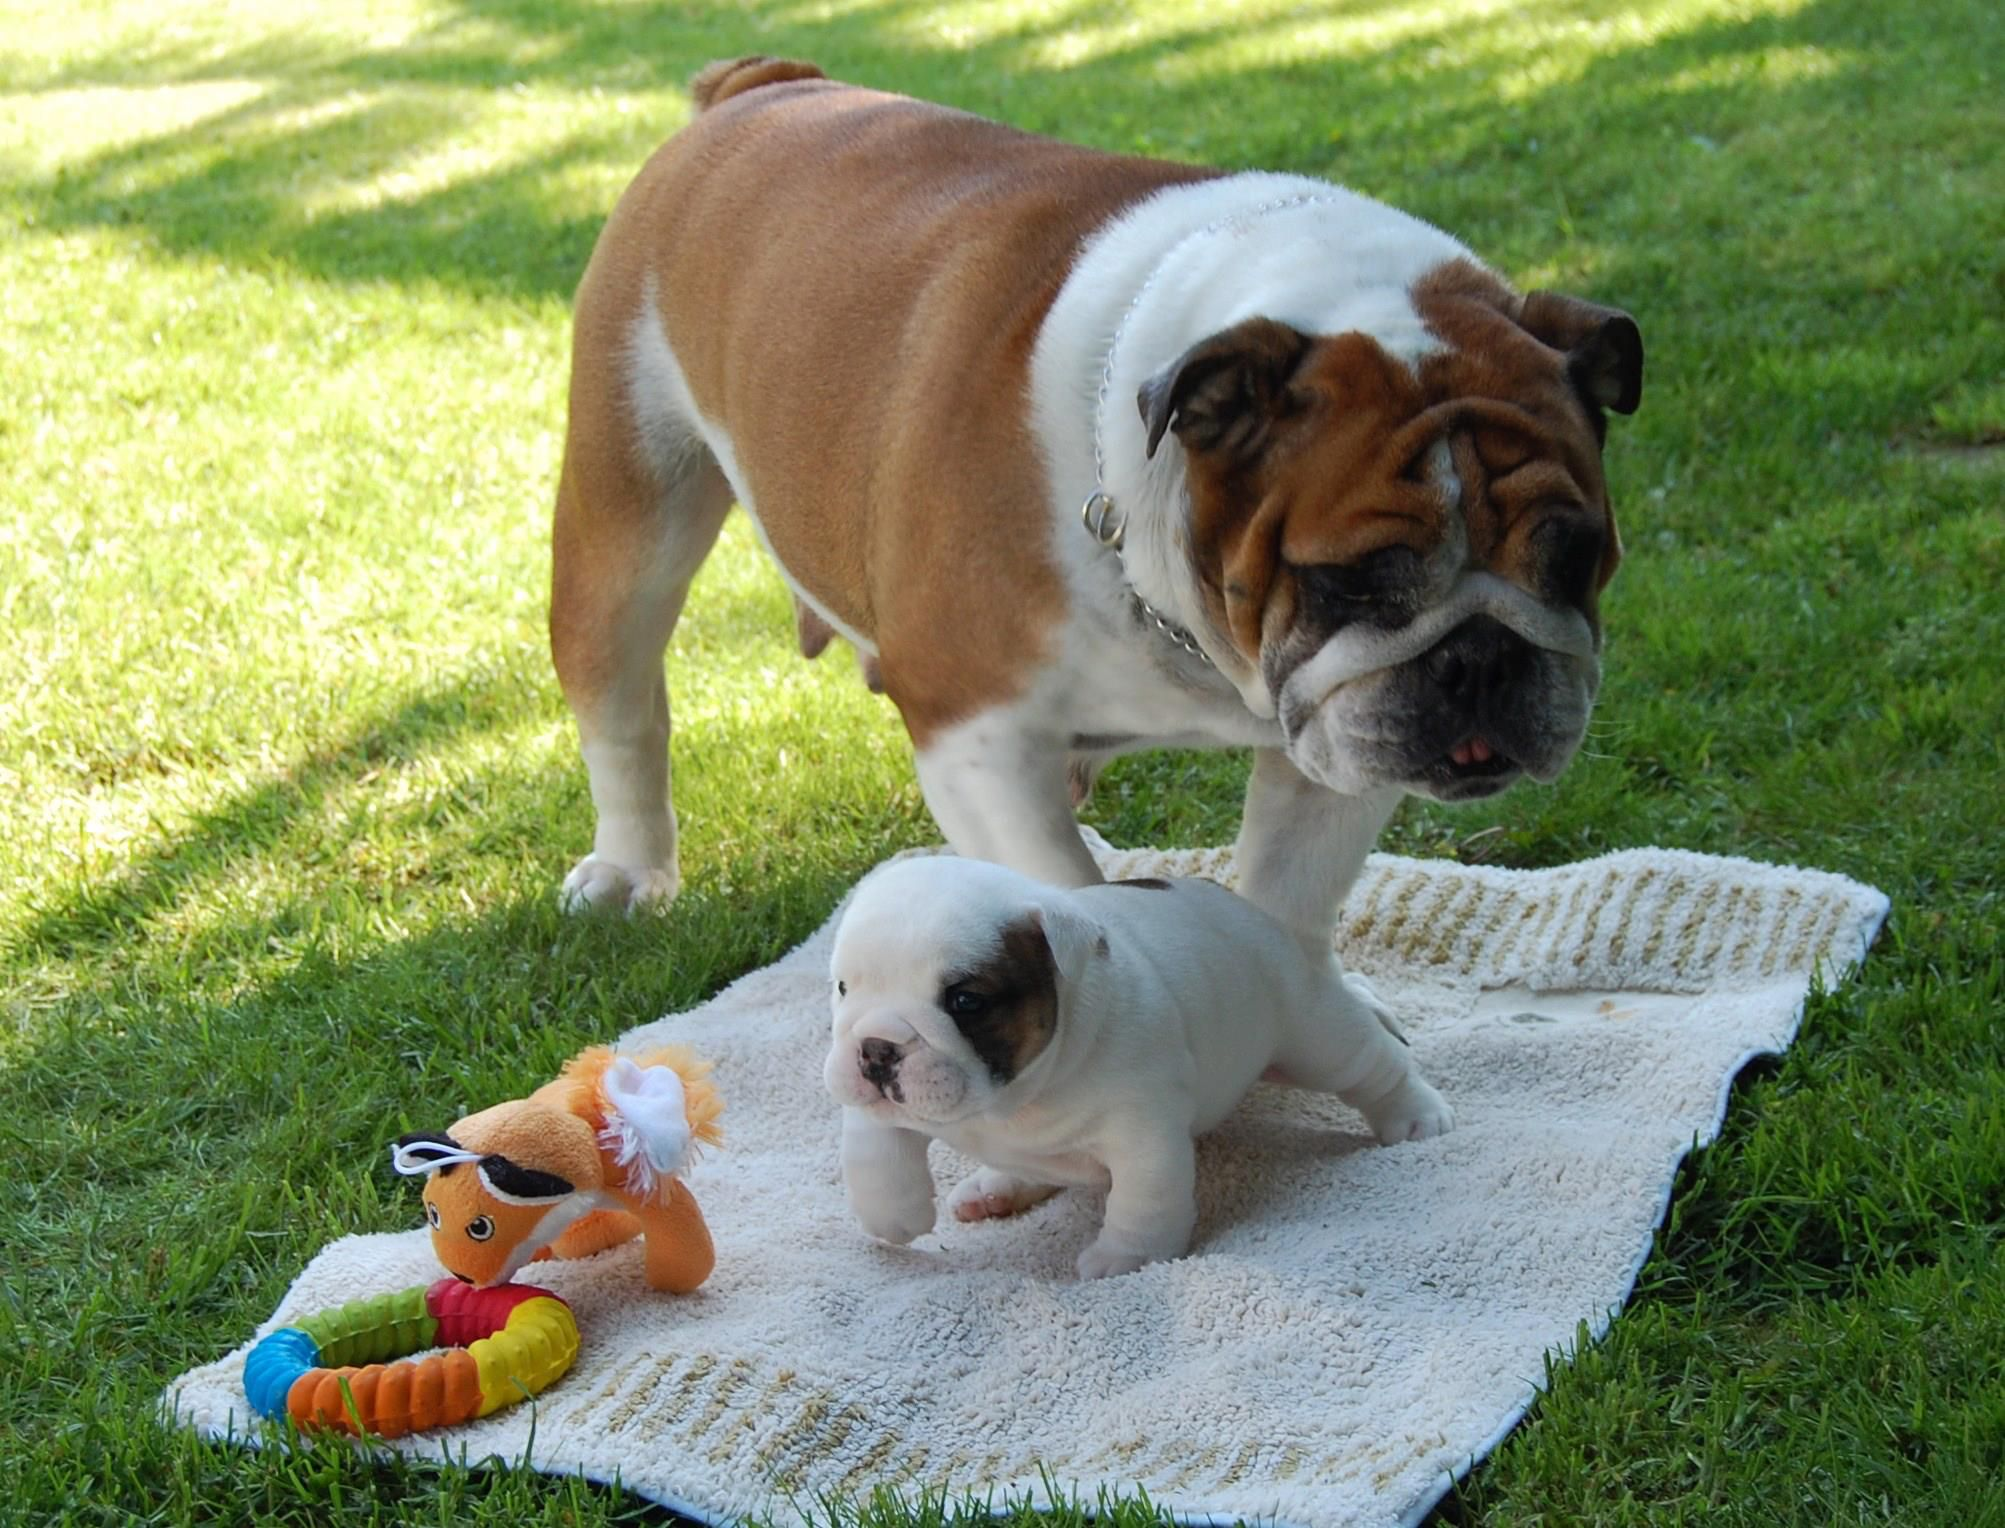 Pin by Cheryl on English Bulldogs Cute animals, Bulldog